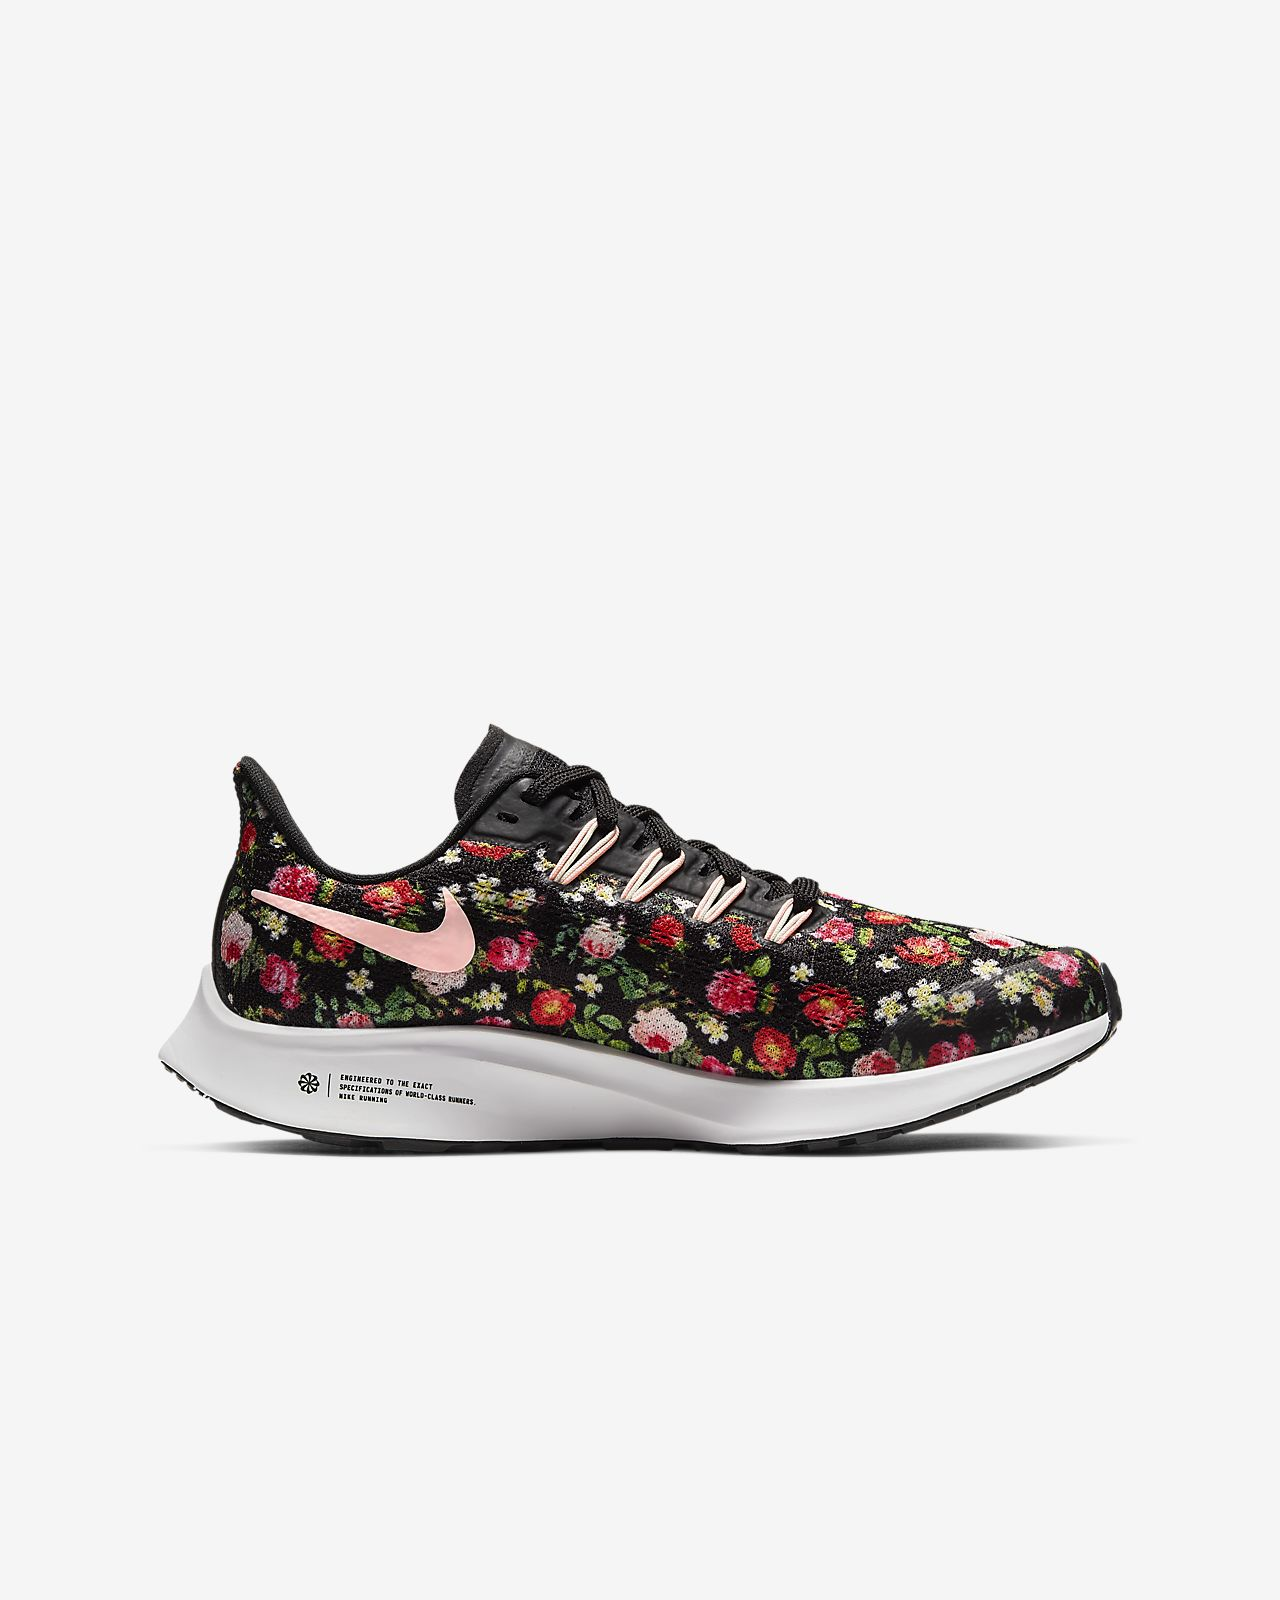 nike running shoes with flowers